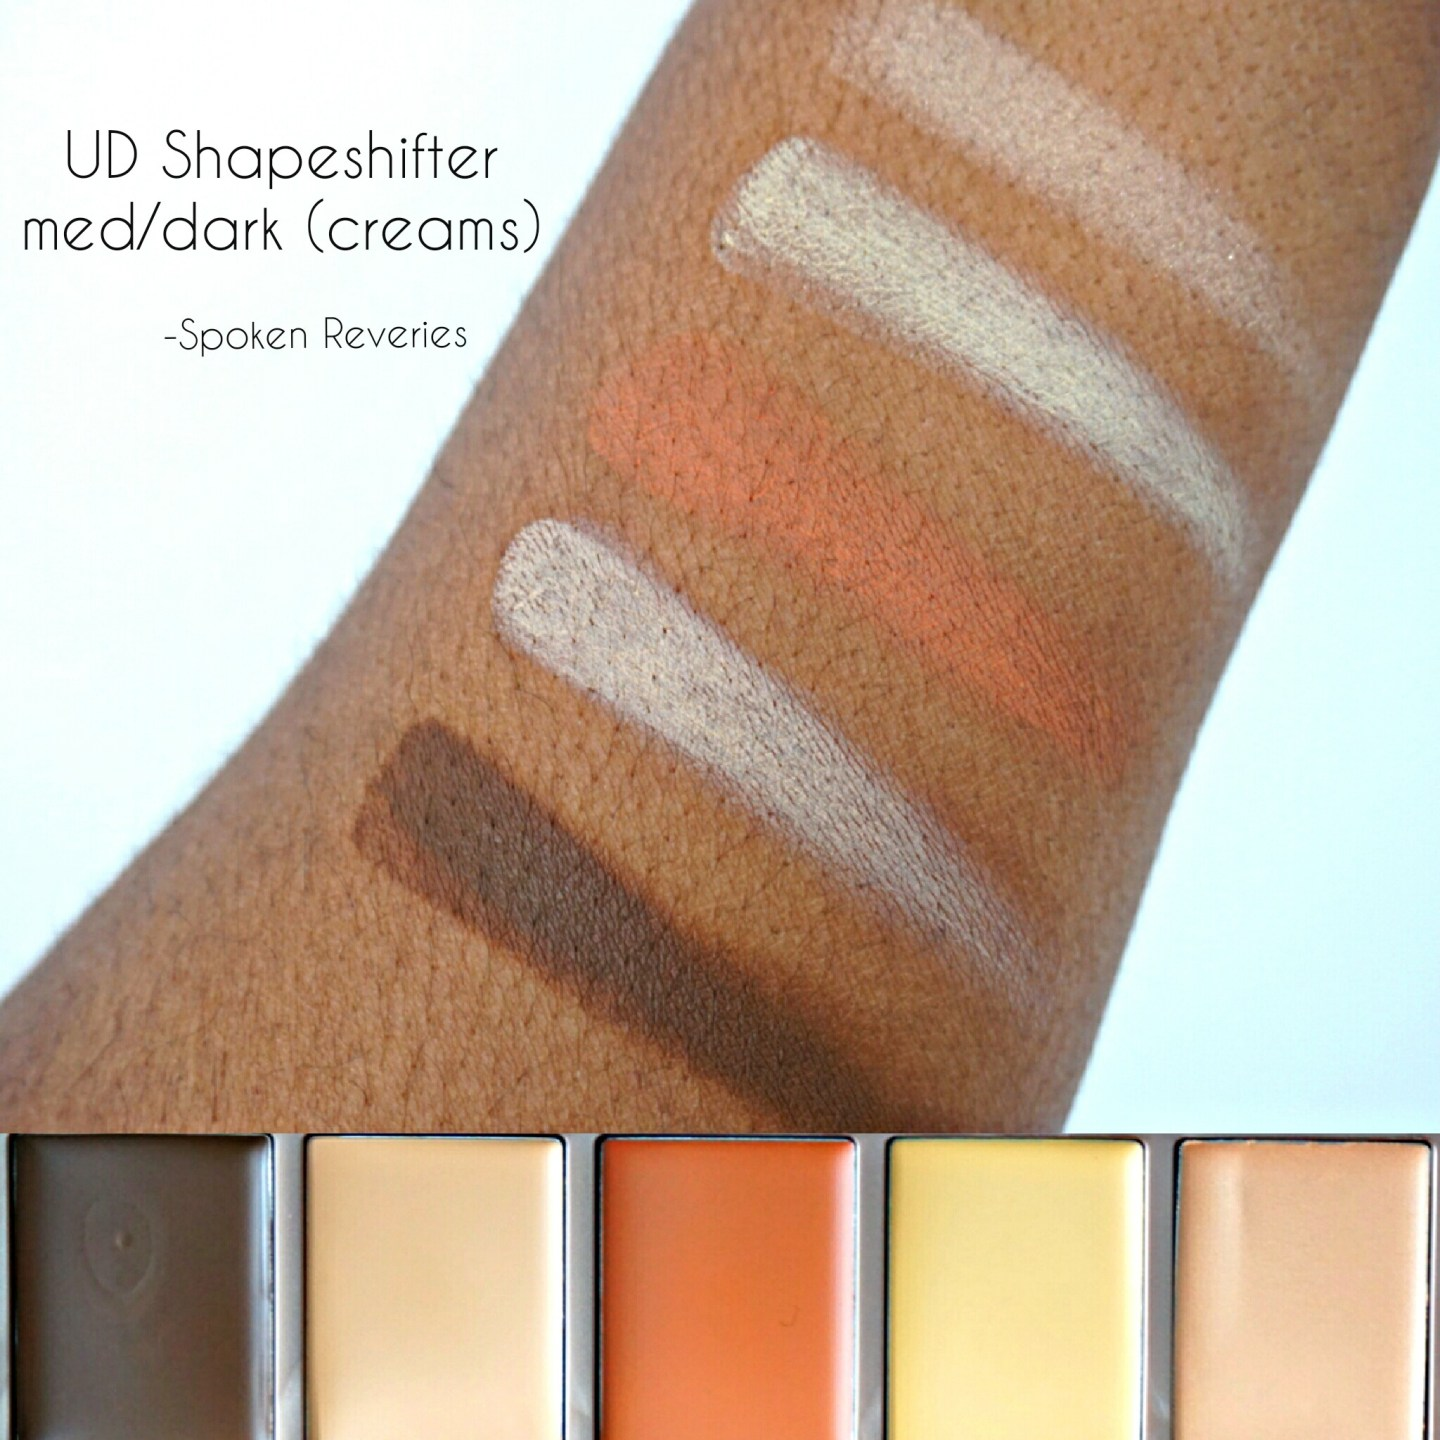 Urban Decay Shapeshifter cream swatches